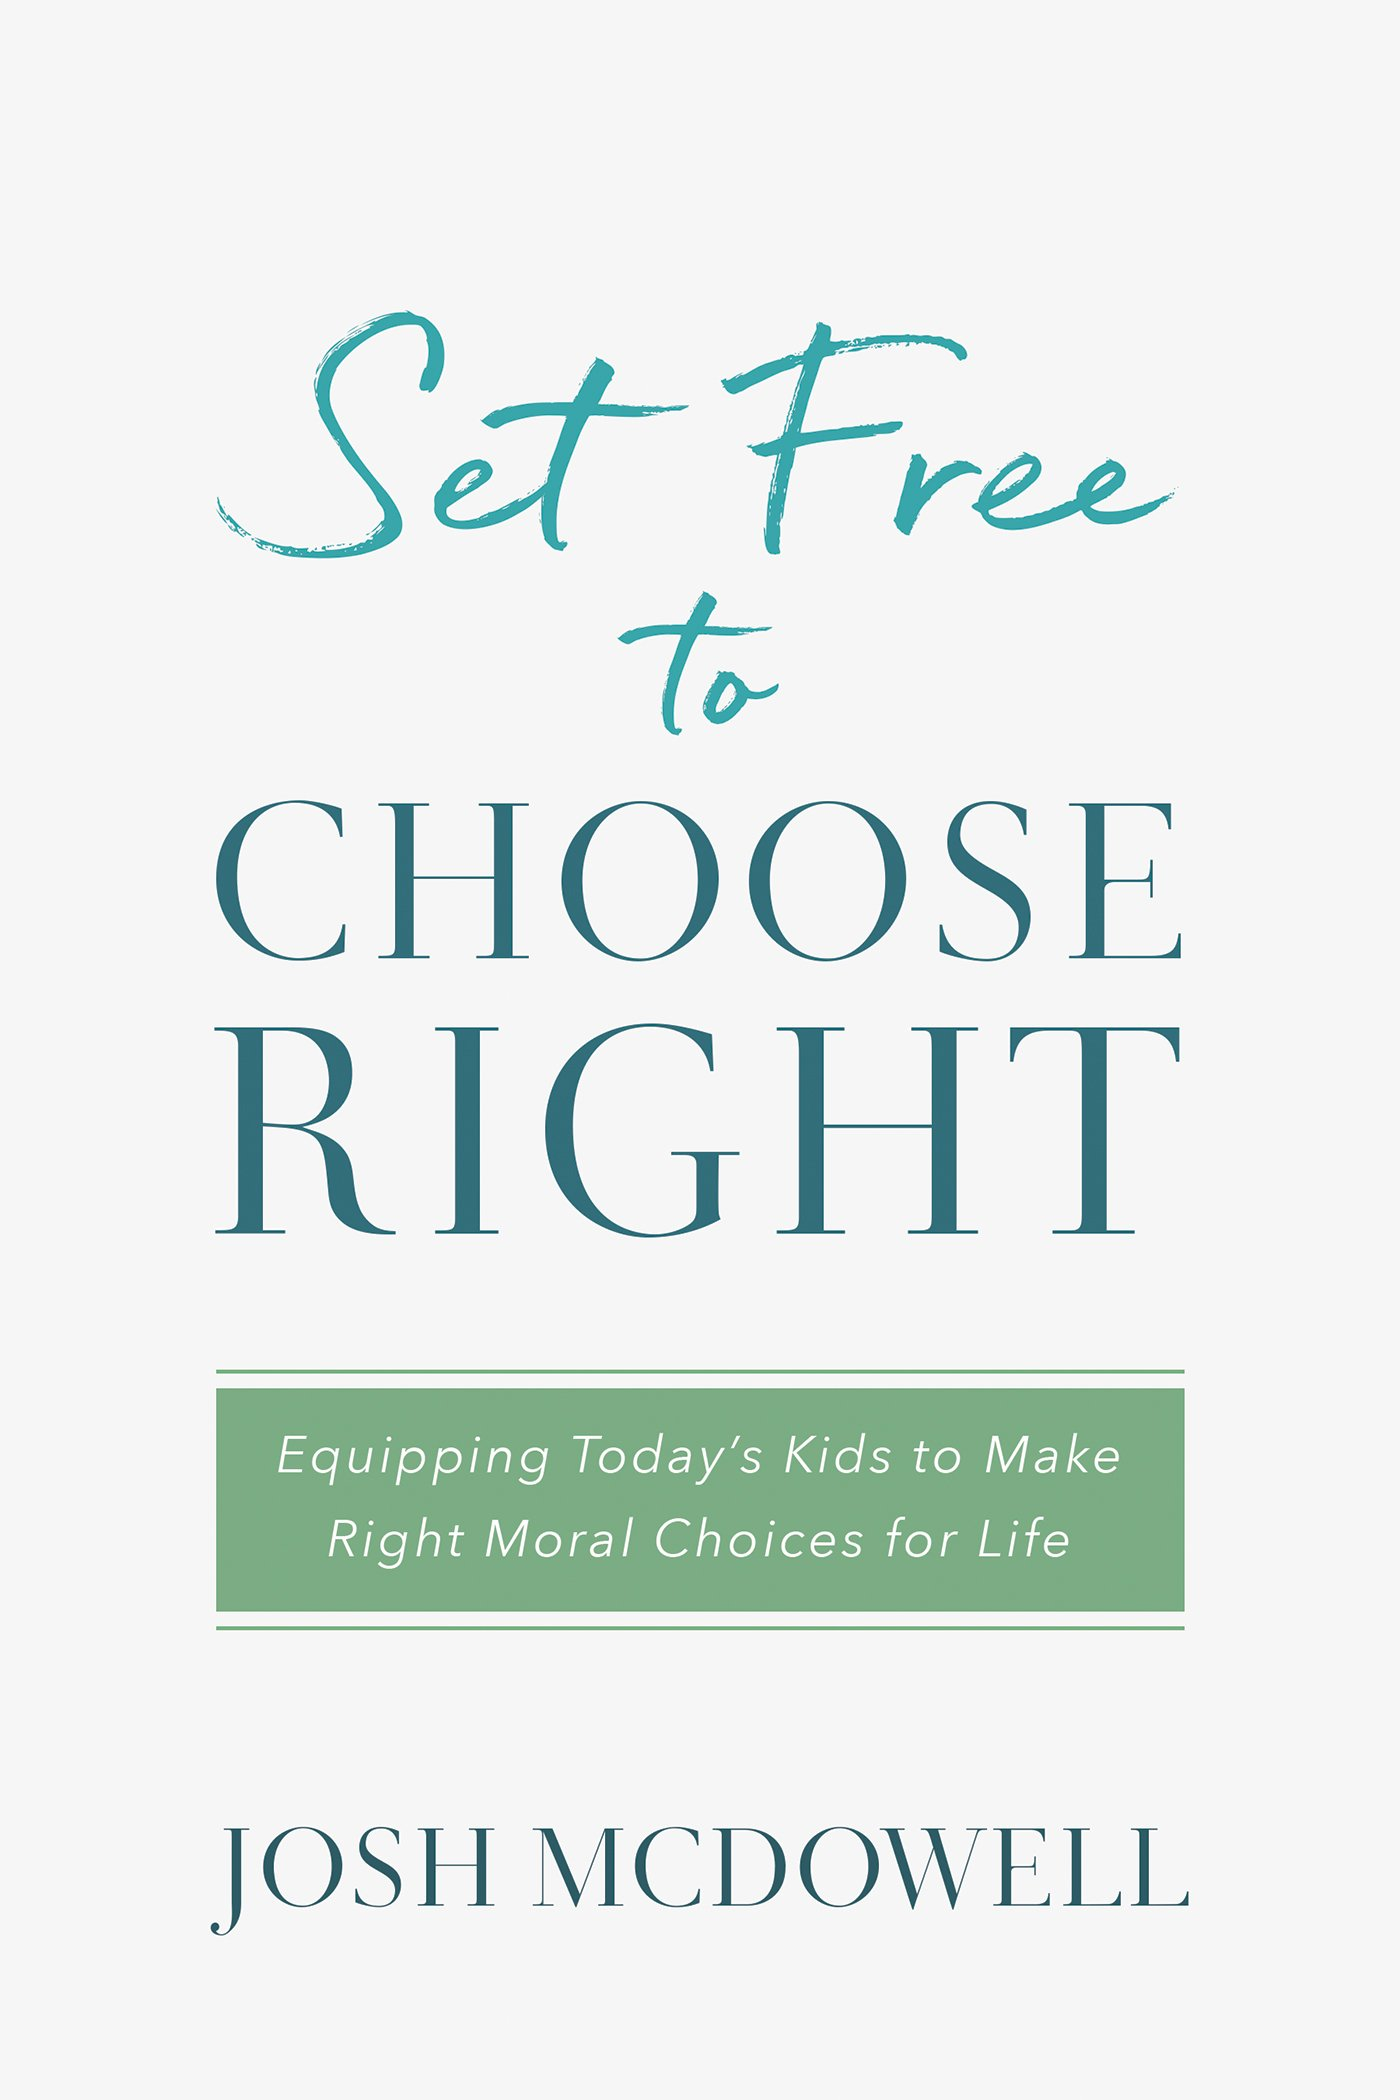 Set Free to Choose Right: Equipping Today's Kids to Make Right Moral  Choices for Life: Josh McDowell: 9781634099745: Amazon.com: Books